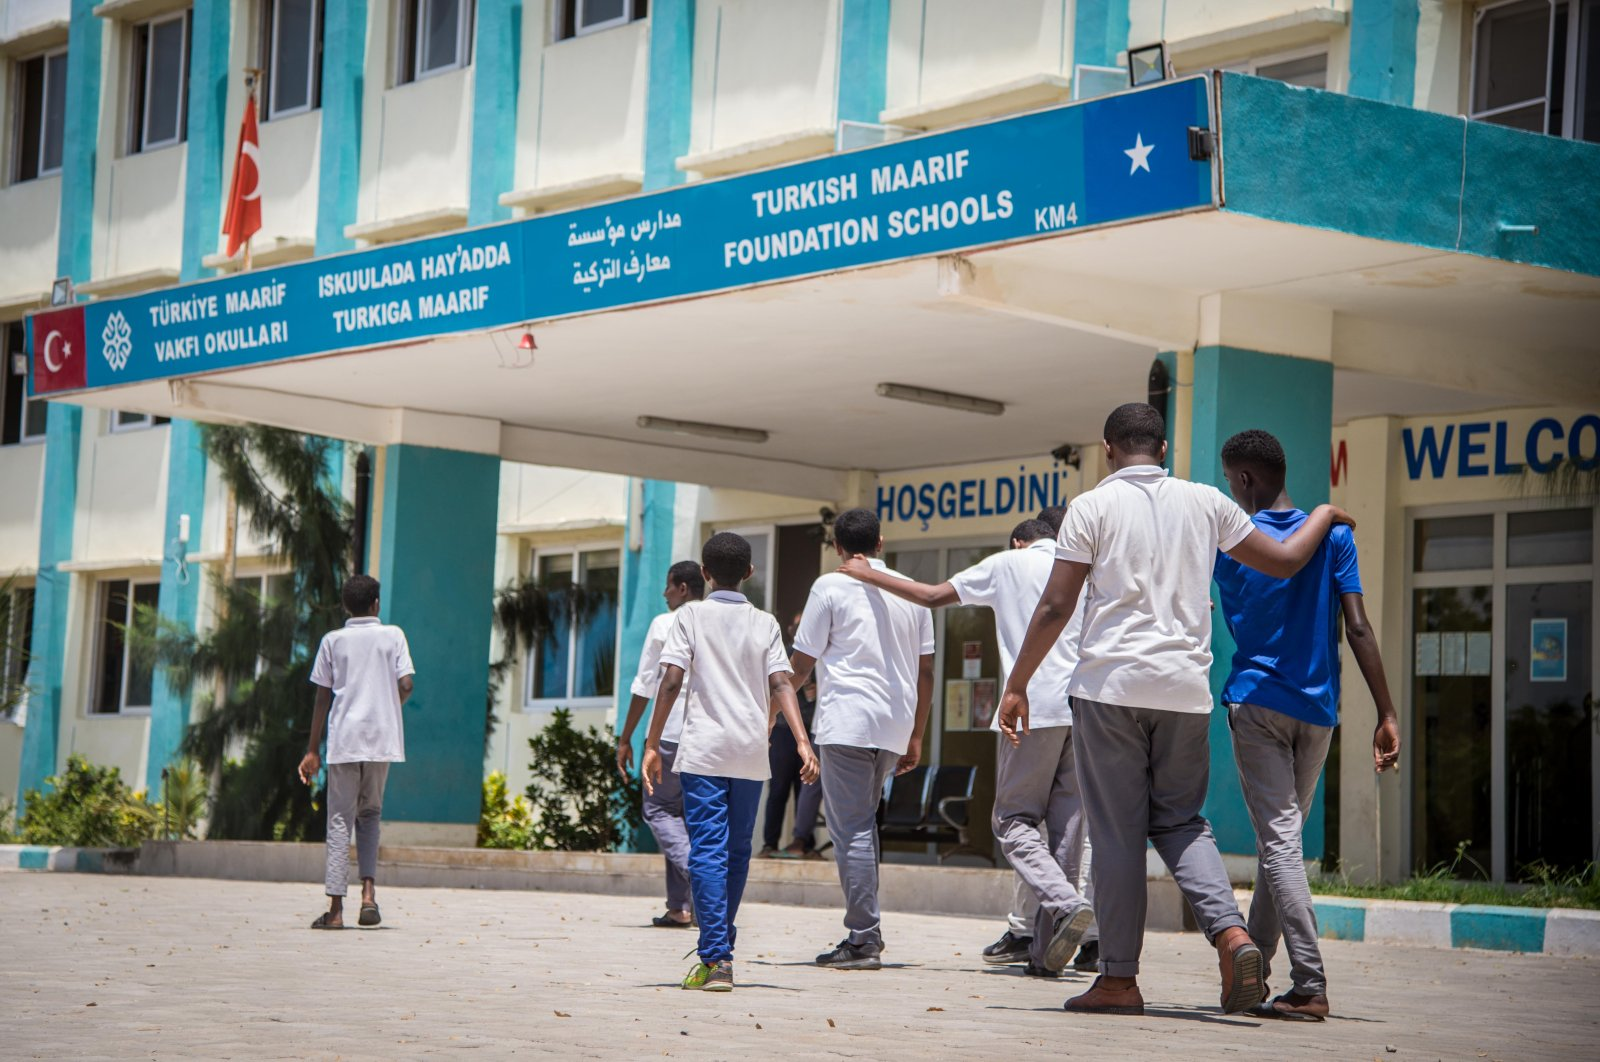 Students take a stroll in front of a school run by Turkey's Maarif Foundation in the Somali capital Mogadishu in this undated file photo. (Sabah File Photo)